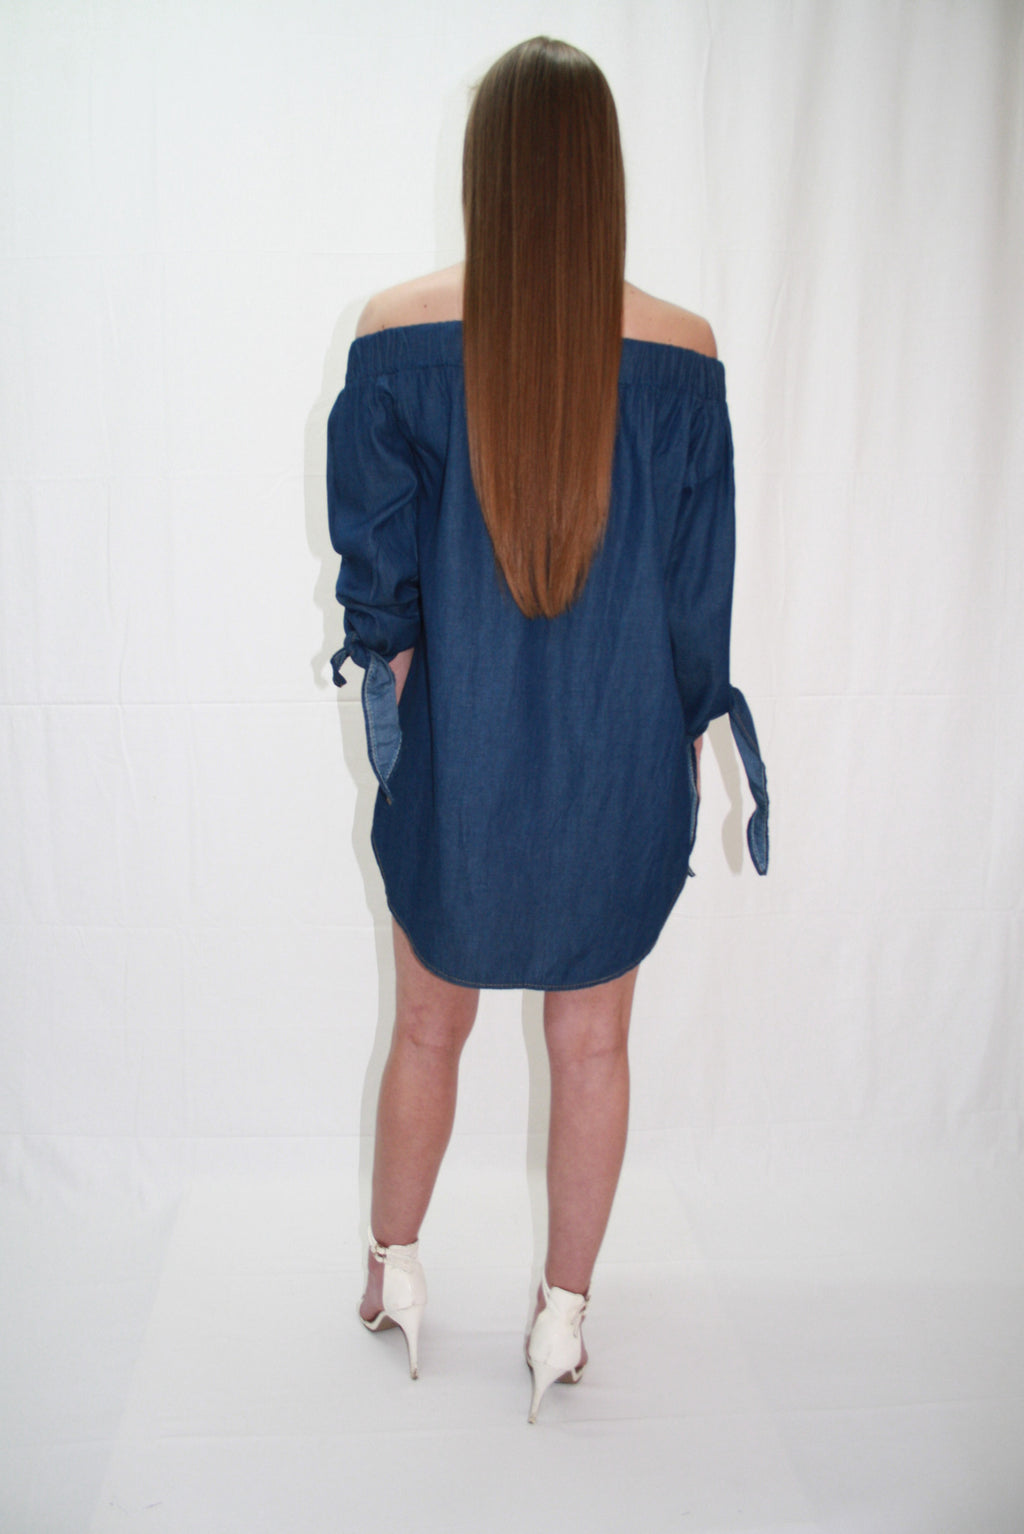 'TIA' DENIM, OFF THE SHOULDER, SHIFT DRESS